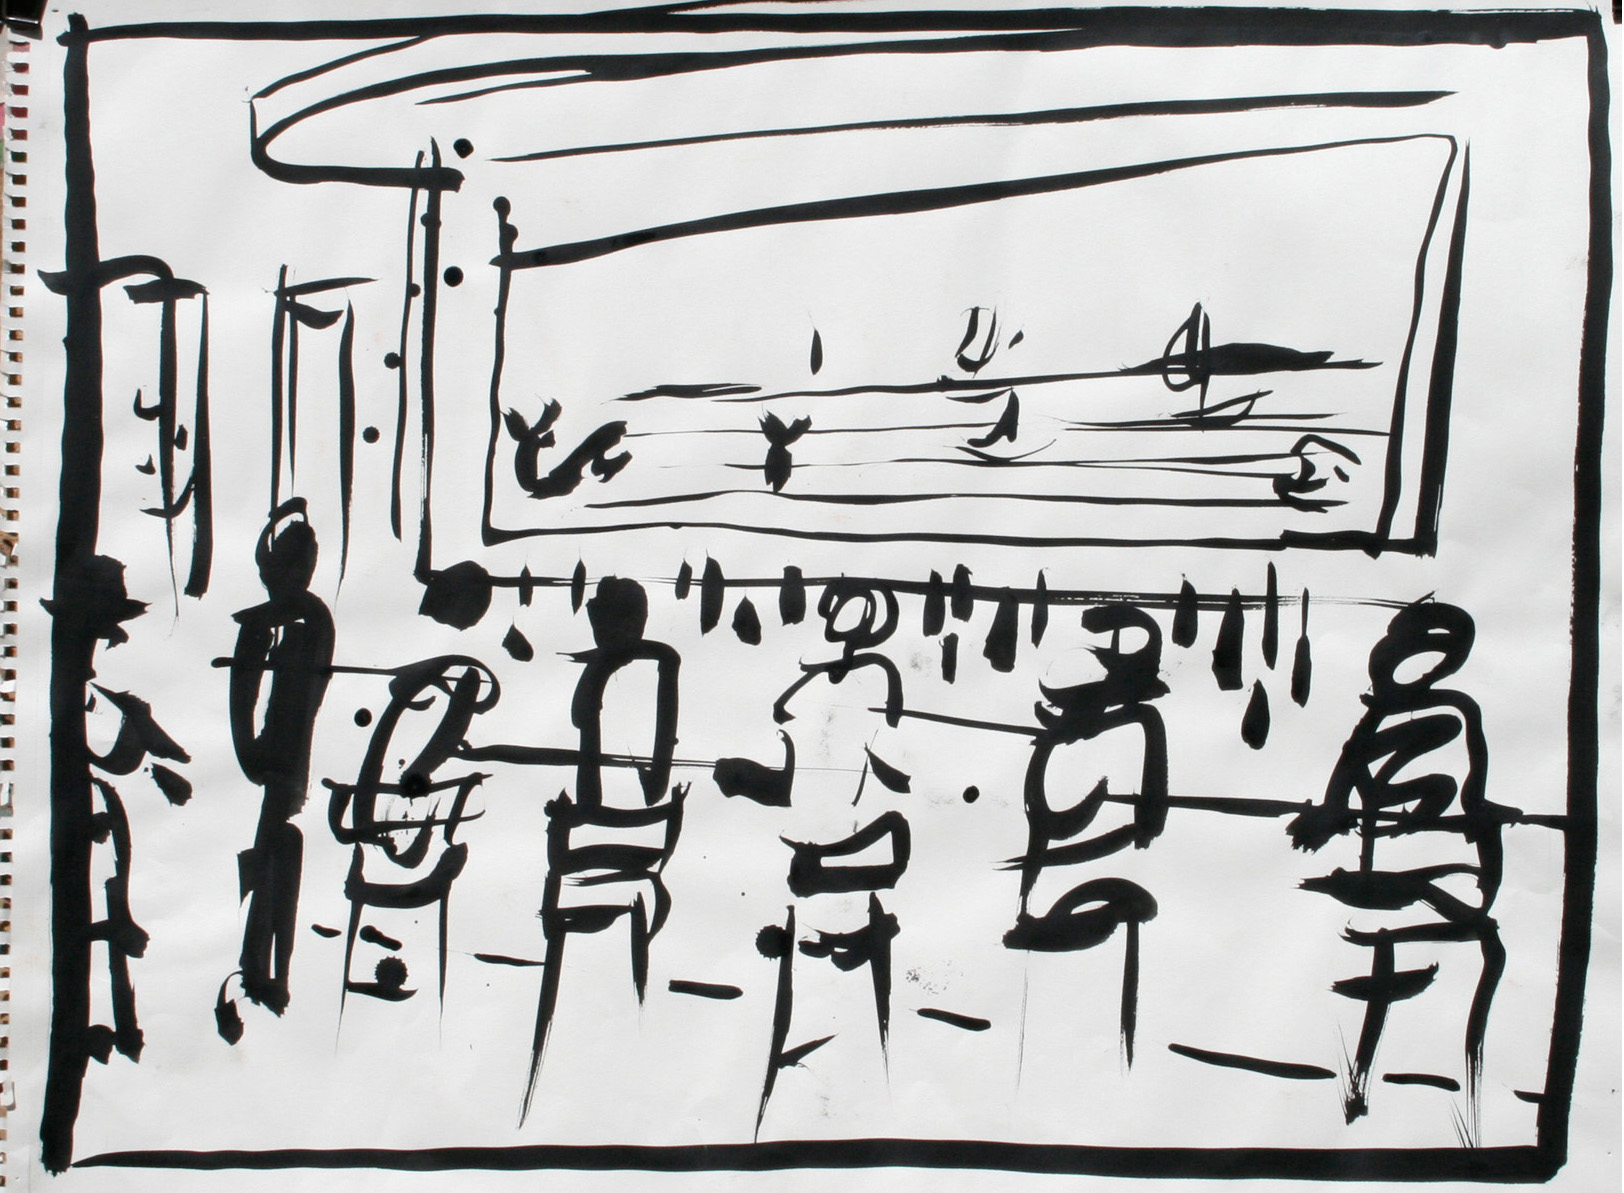 Raul Guerrero  The Whaling Bar – C, 2003  India ink on arches paper Framed Dimensions: 17 x 22 inches (86.4 x 116.8 centimeters)